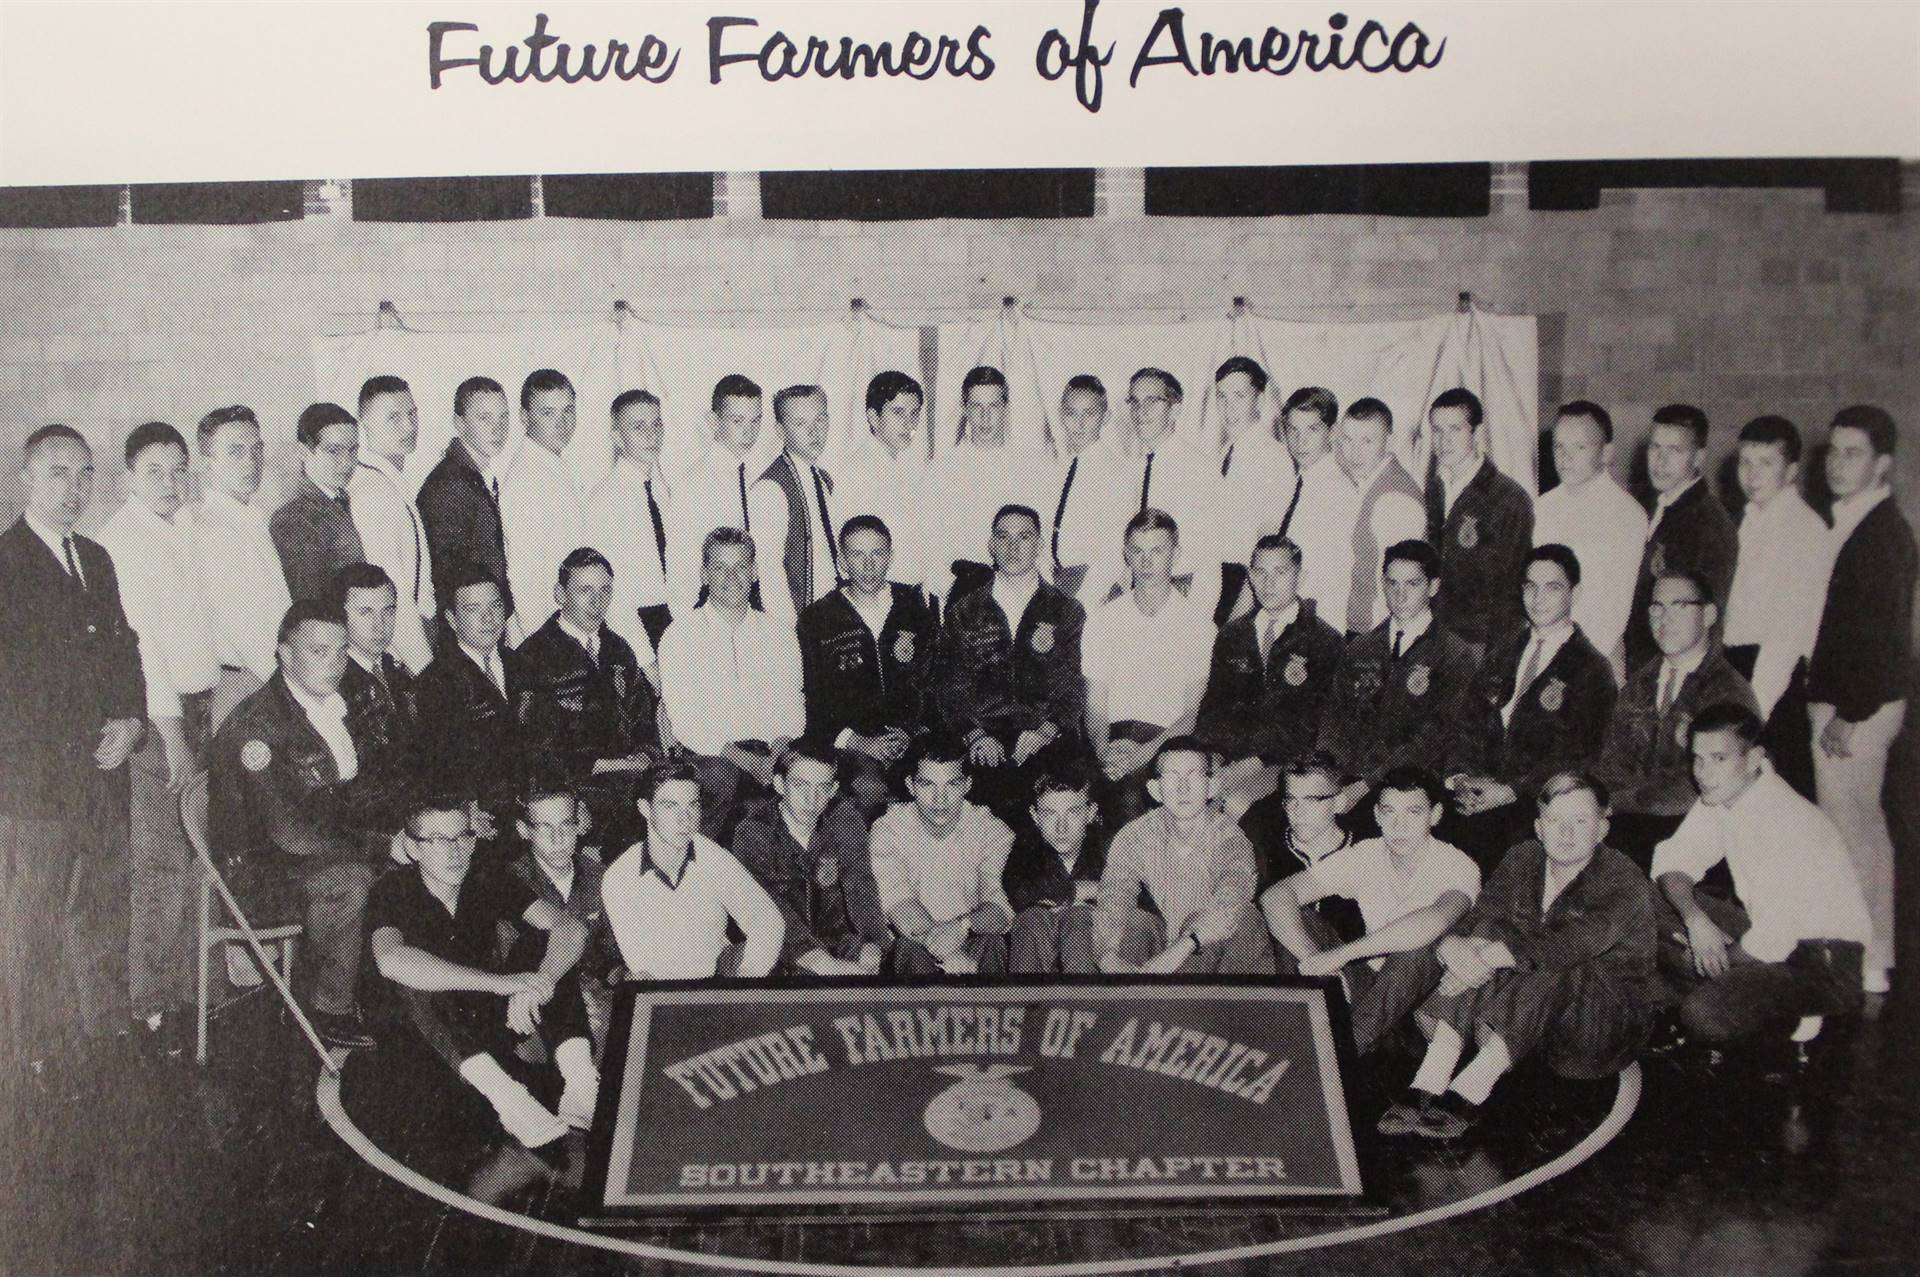 1964 Future Farmers of America